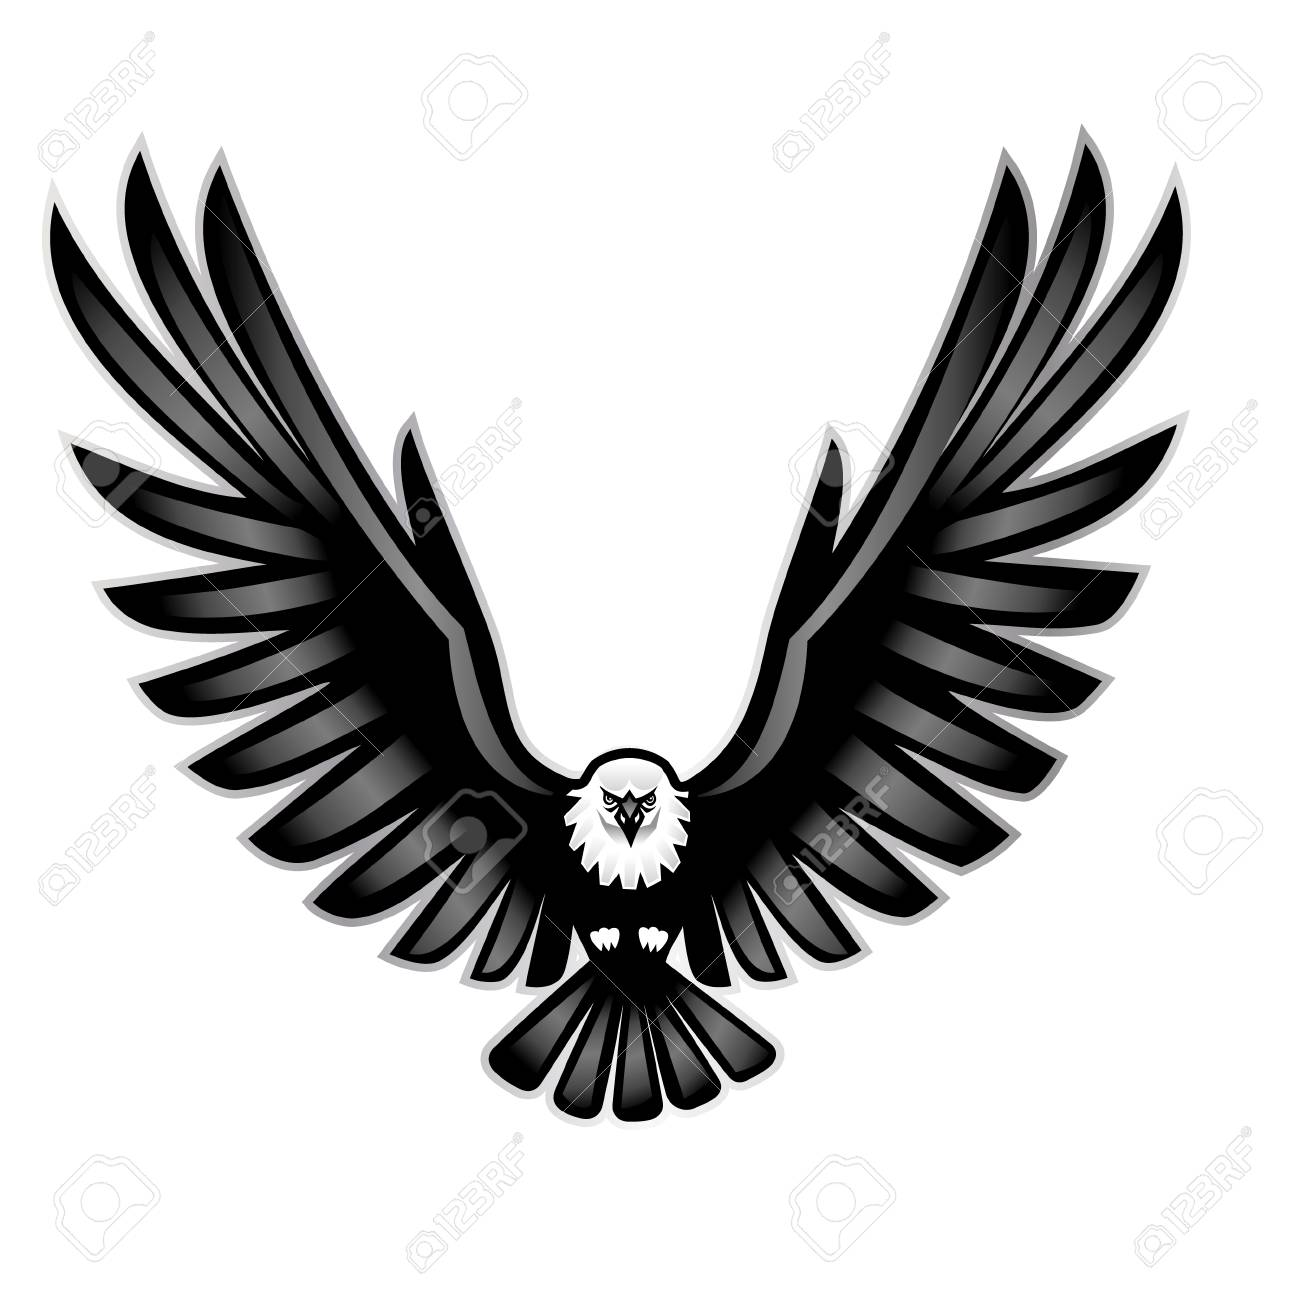 vector illustration of a eagle wings royalty free cliparts vectors and stock illustration image 117796535 vector illustration of a eagle wings